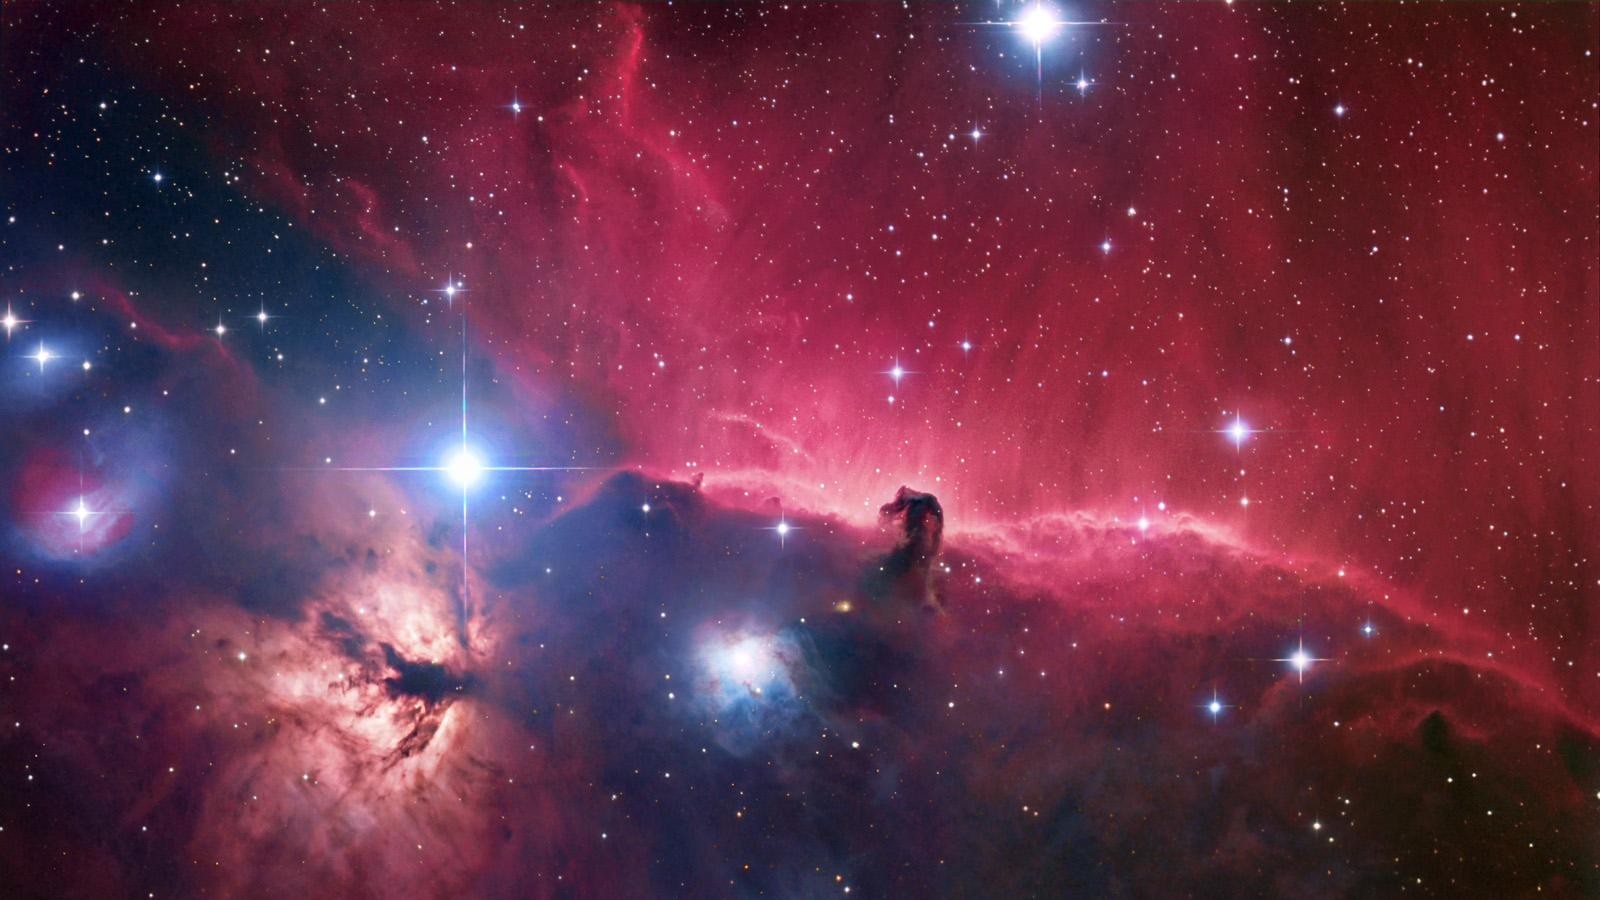 Space Wallpapers High Resolution: High Resolution Space Wallpaper 2560x1440